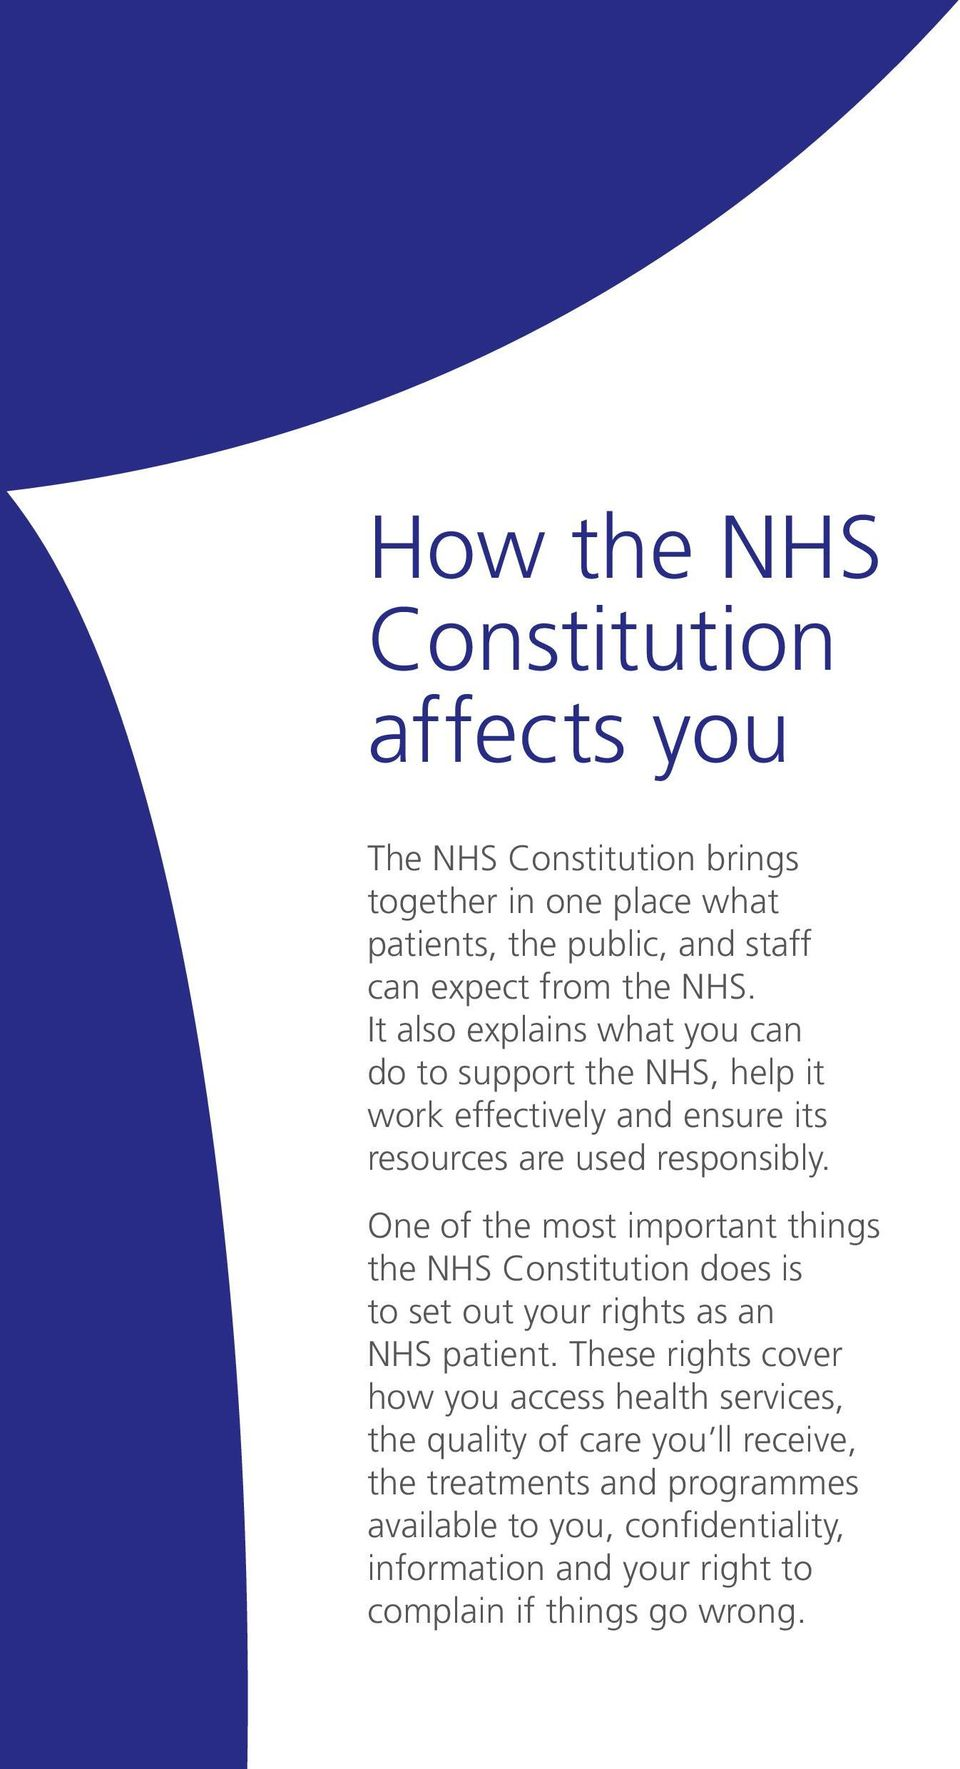 One of the most important things the NHS Constitution does is to set out your rights as an NHS patient.